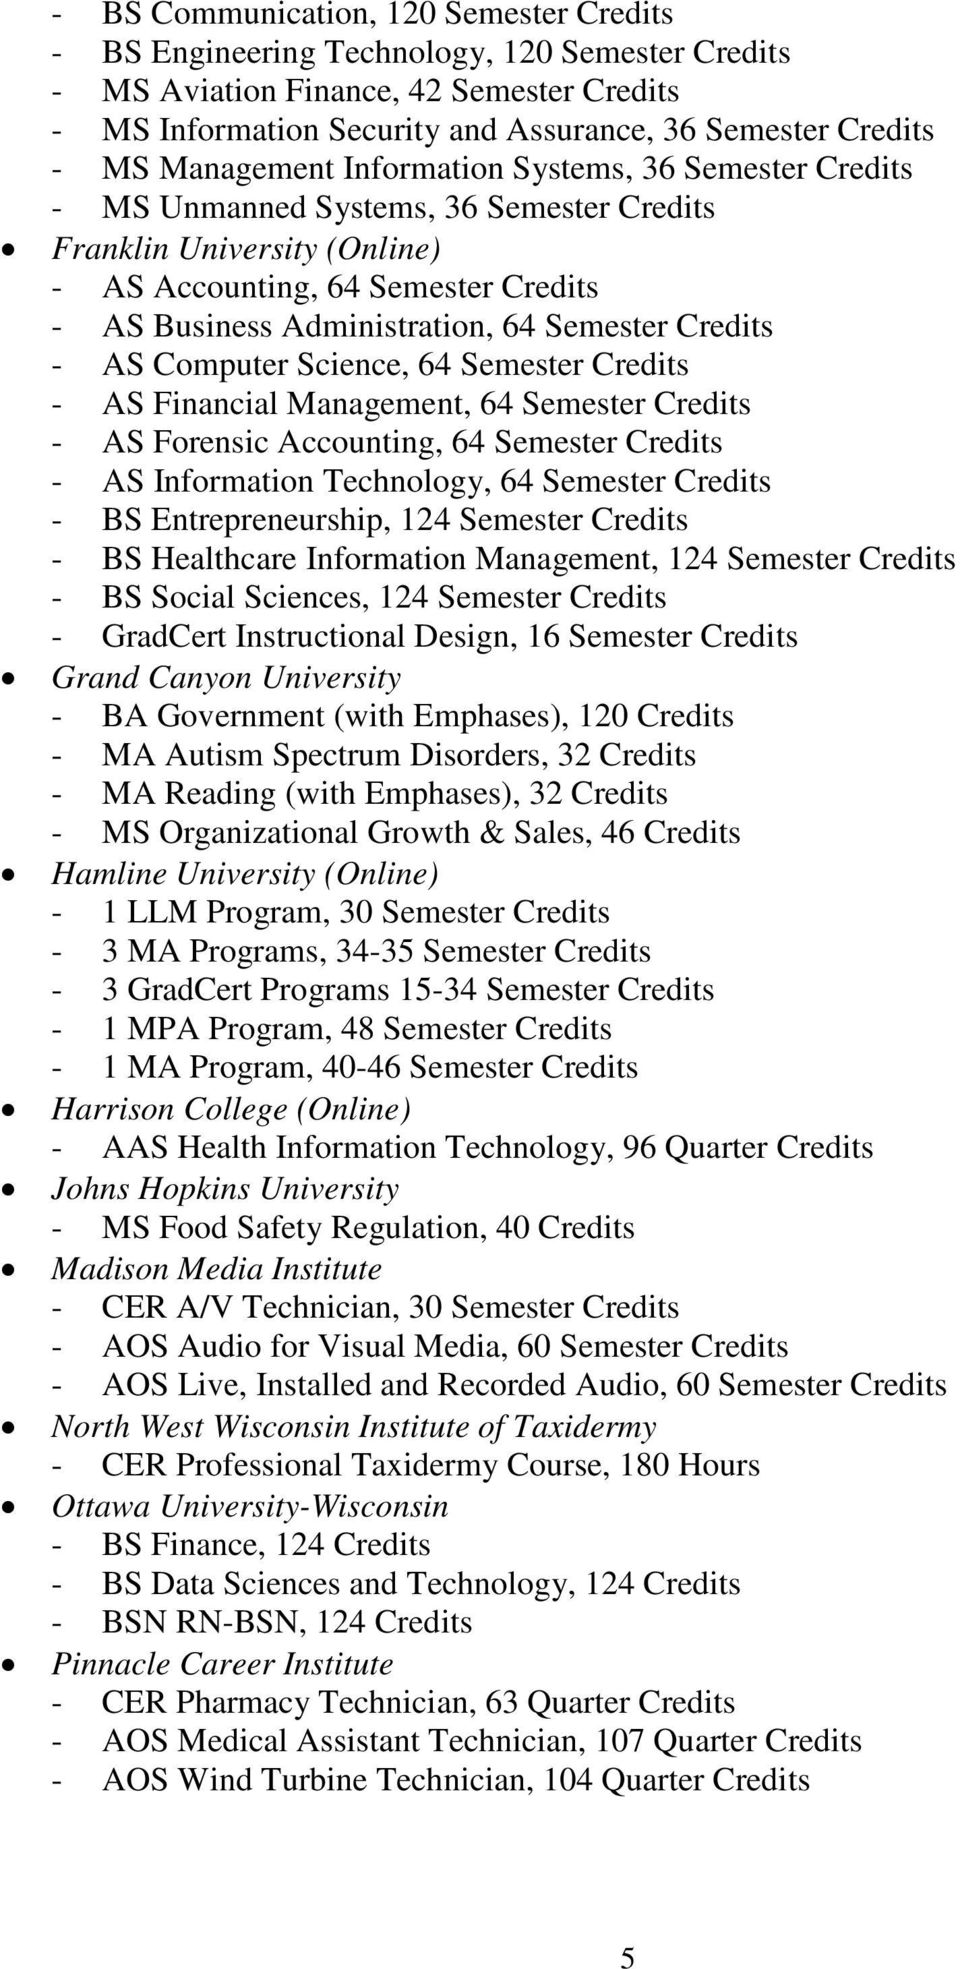 Semester Credits - AS Computer Science, 64 Semester Credits - AS Financial Management, 64 Semester Credits - AS Forensic Accounting, 64 Semester Credits - AS Information Technology, 64 Semester